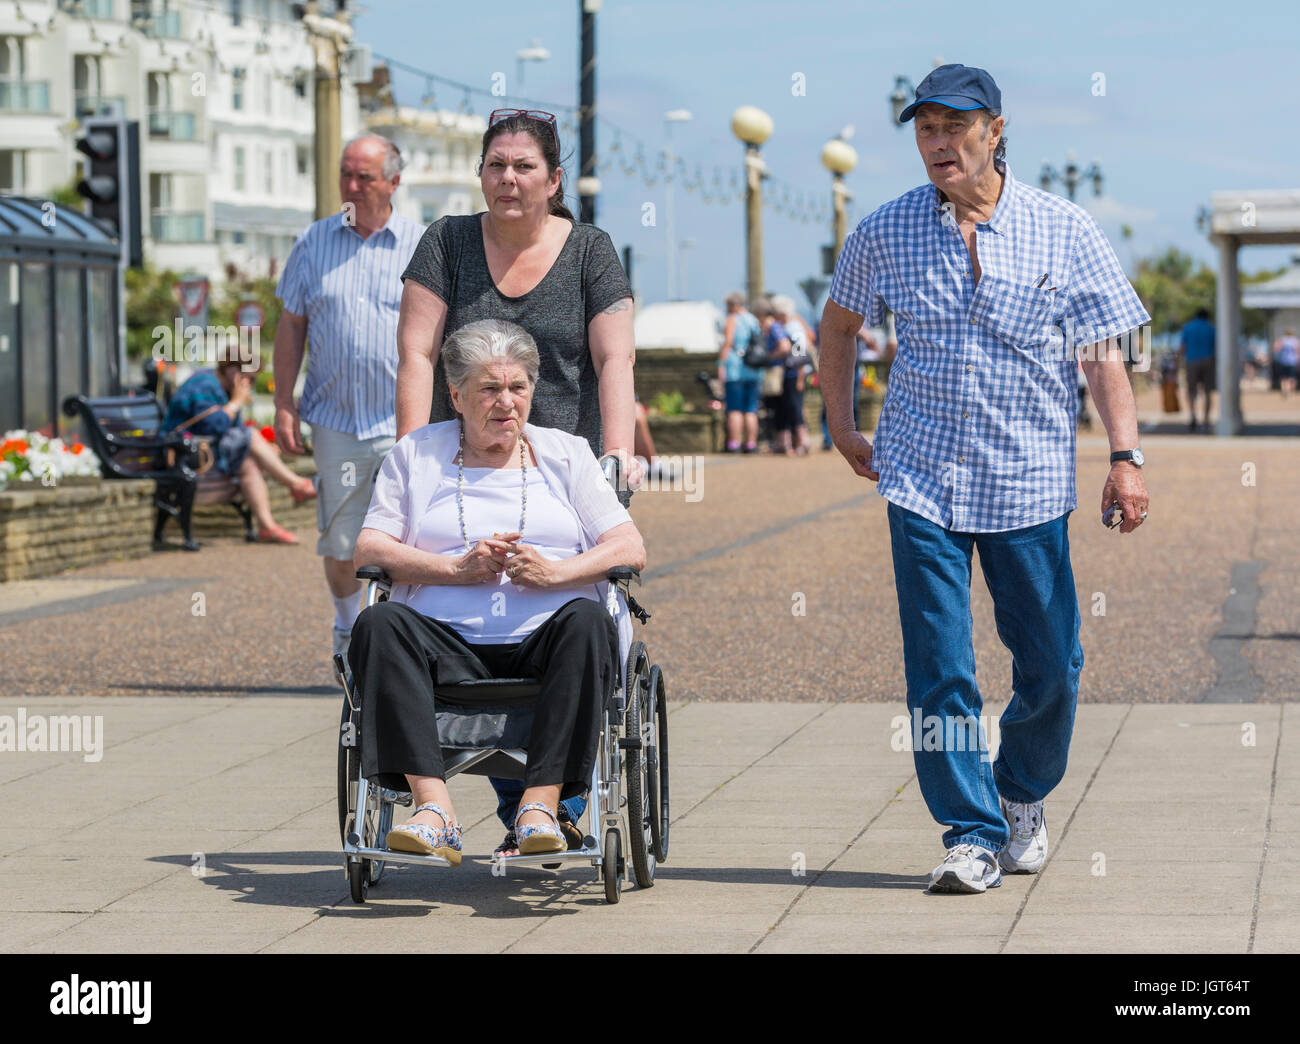 Elderly disabled woman being pushed in a wheelchair. - Stock Image